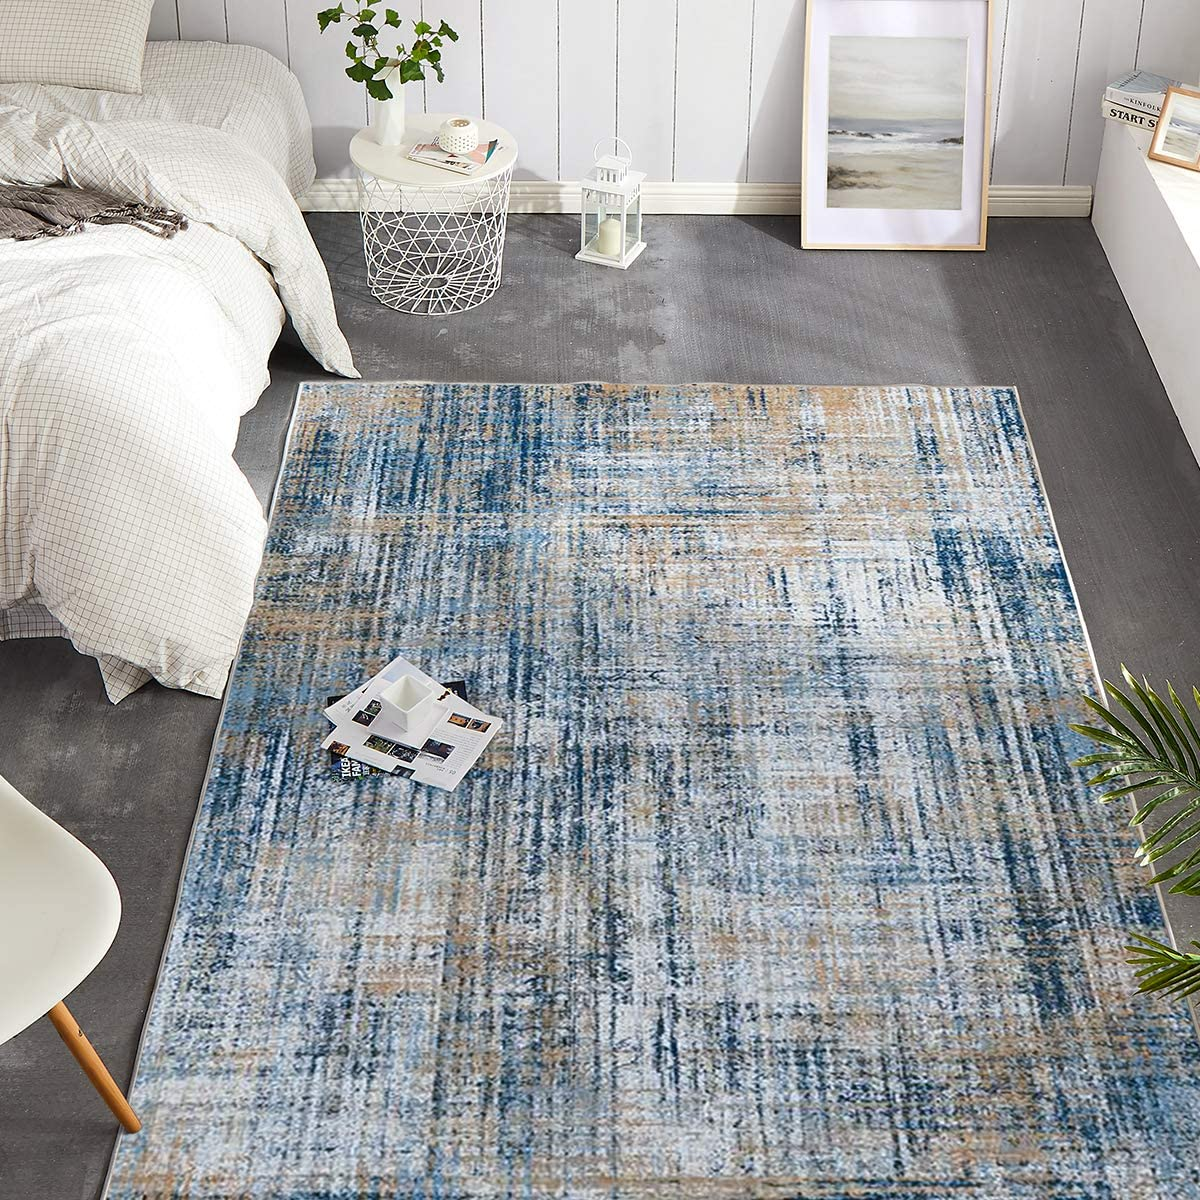 JINCHAN Floorcover Area Rug Navy Modern Abstract Colorful Low Pile Mat for Bedroom Kitchen Living Room Indoor 4'x 6'